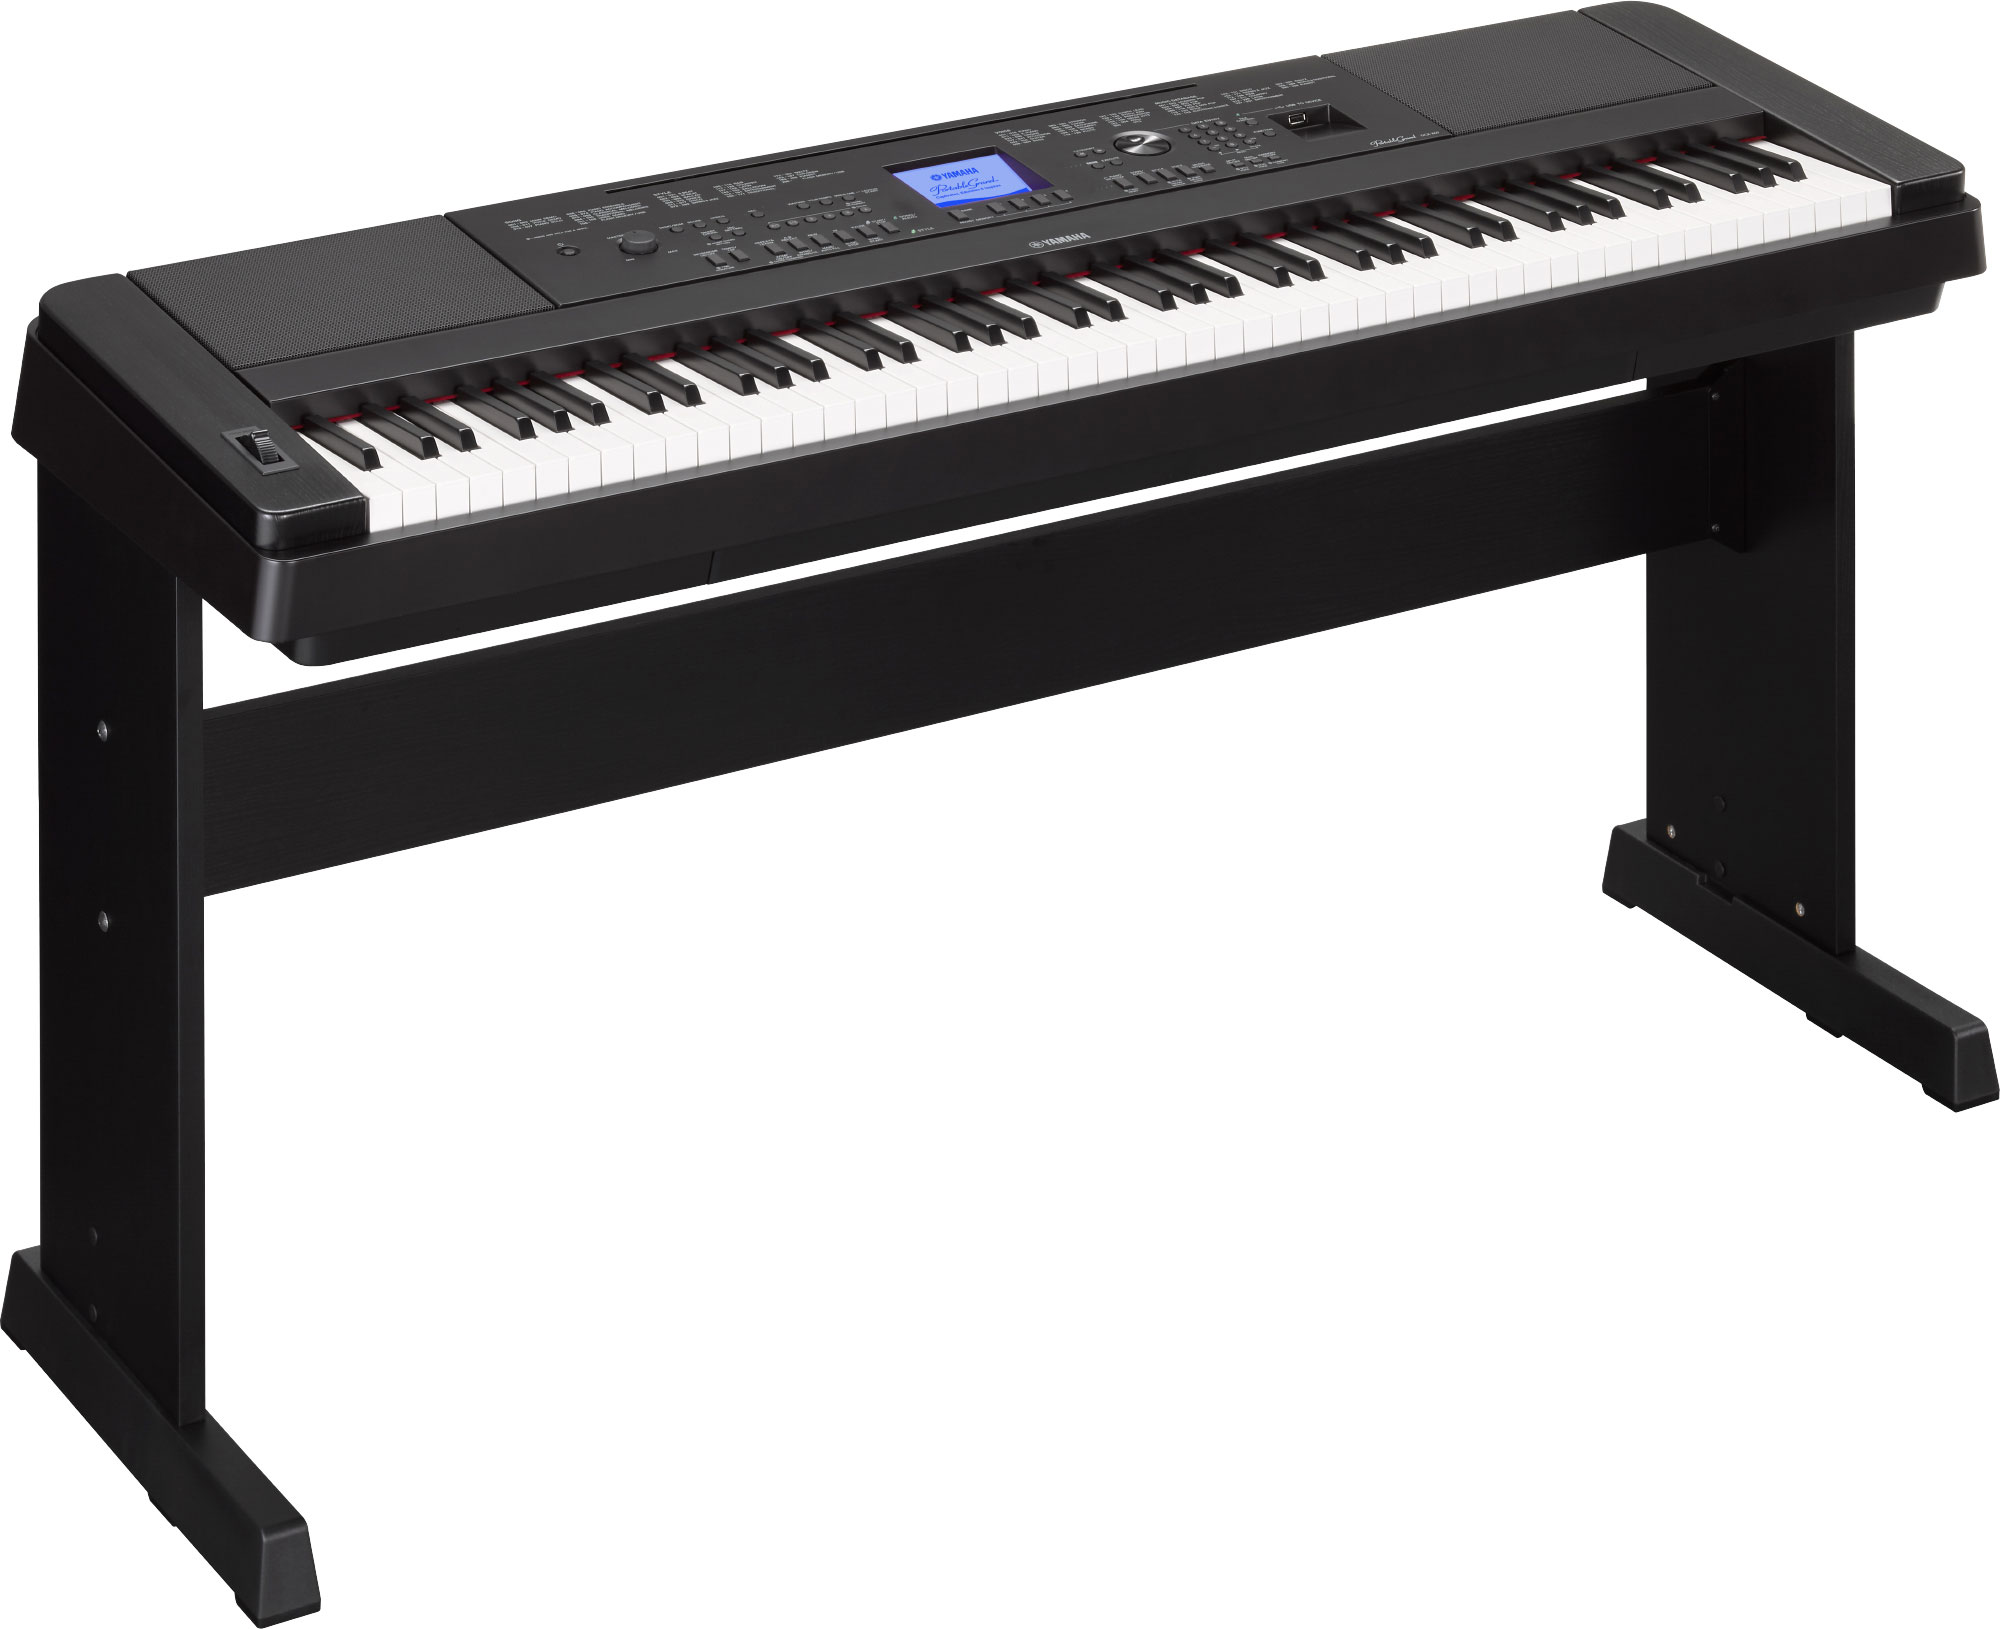 dgx 660 absolute pianoabsolute piano. Black Bedroom Furniture Sets. Home Design Ideas